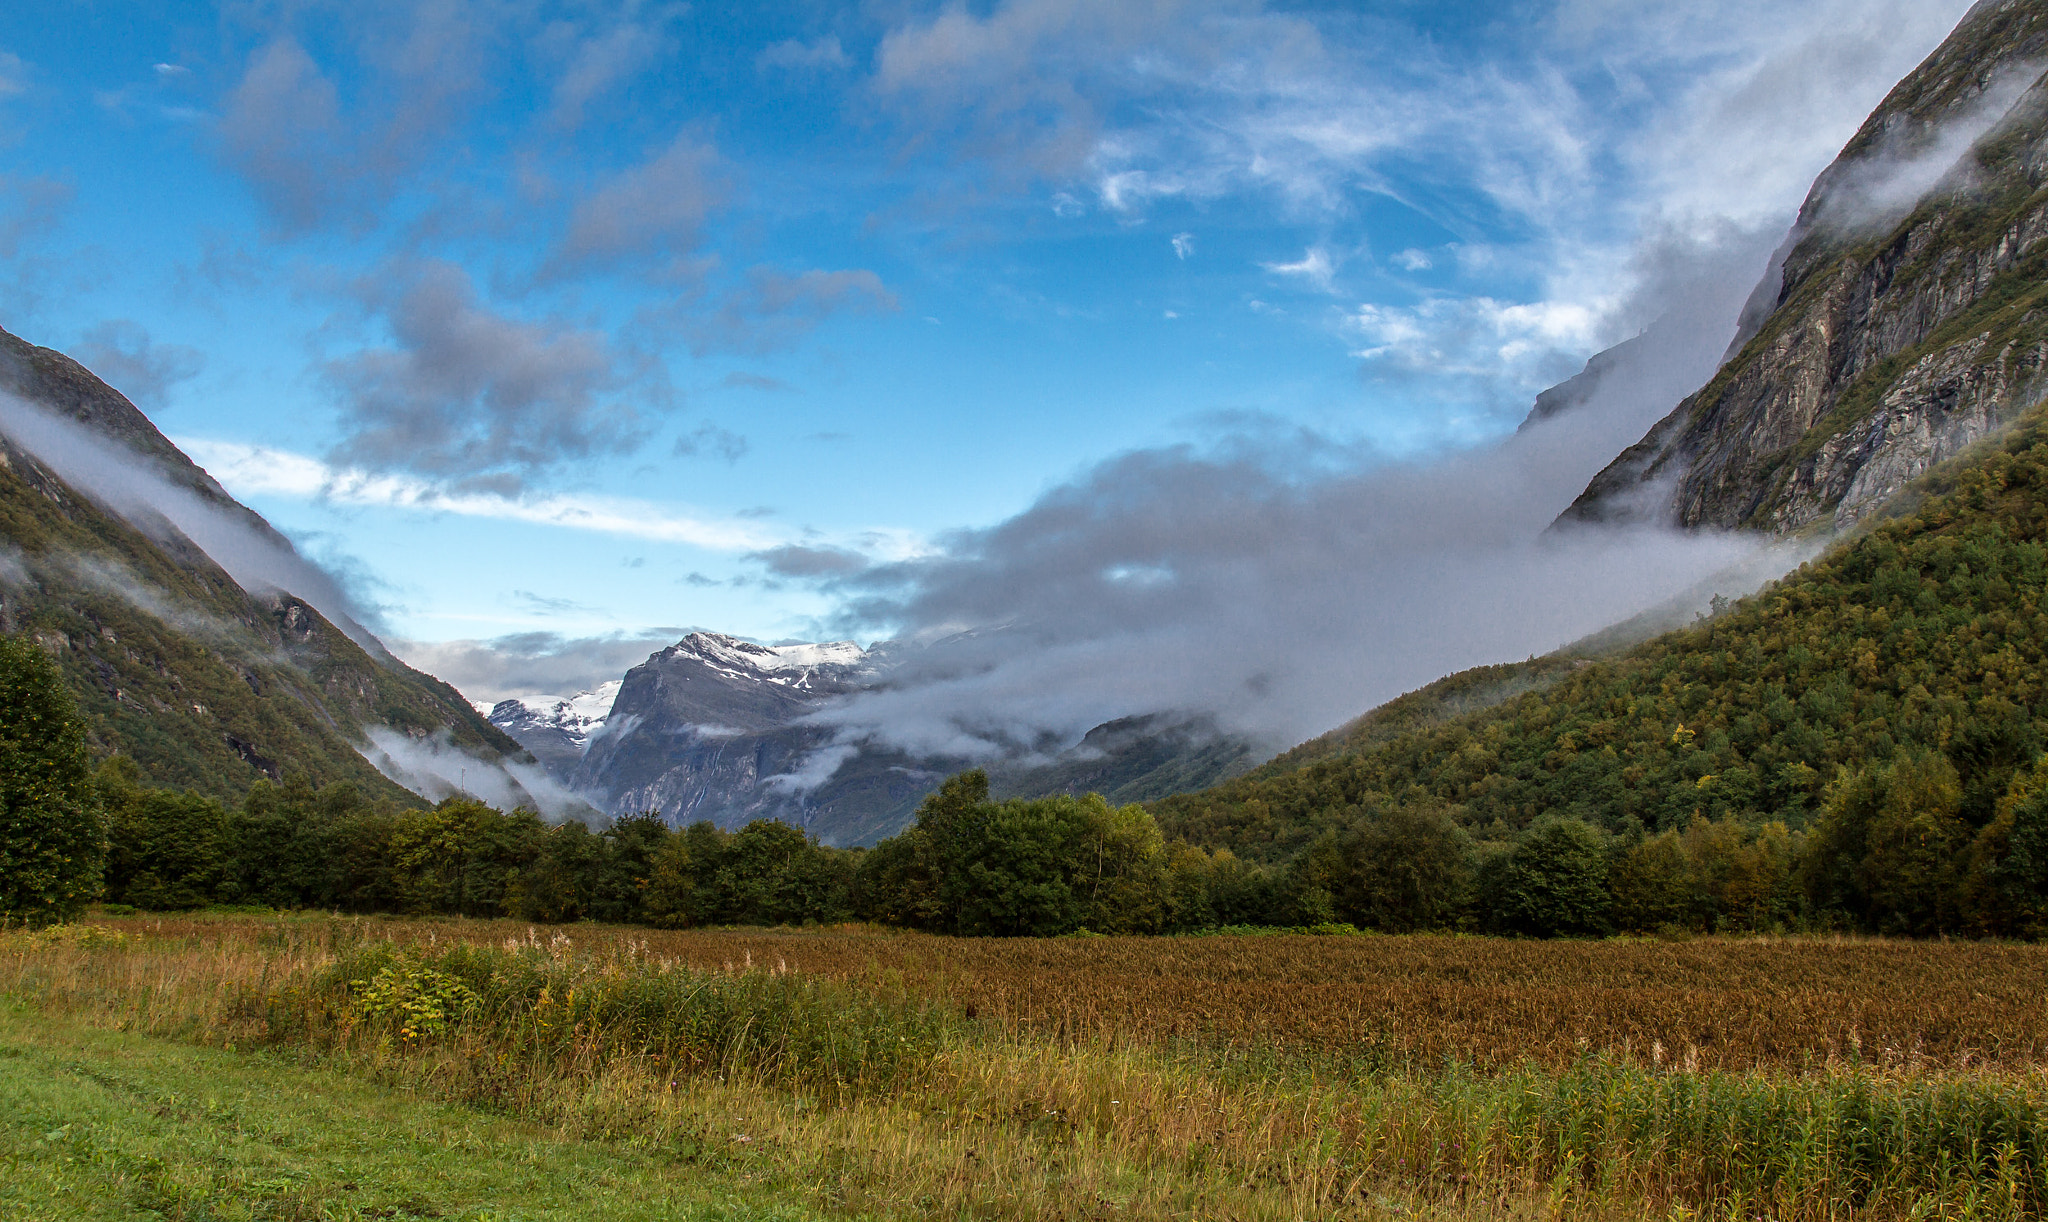 Photograph Morning in the mountains by Jens-Chr. Strandos on 500px